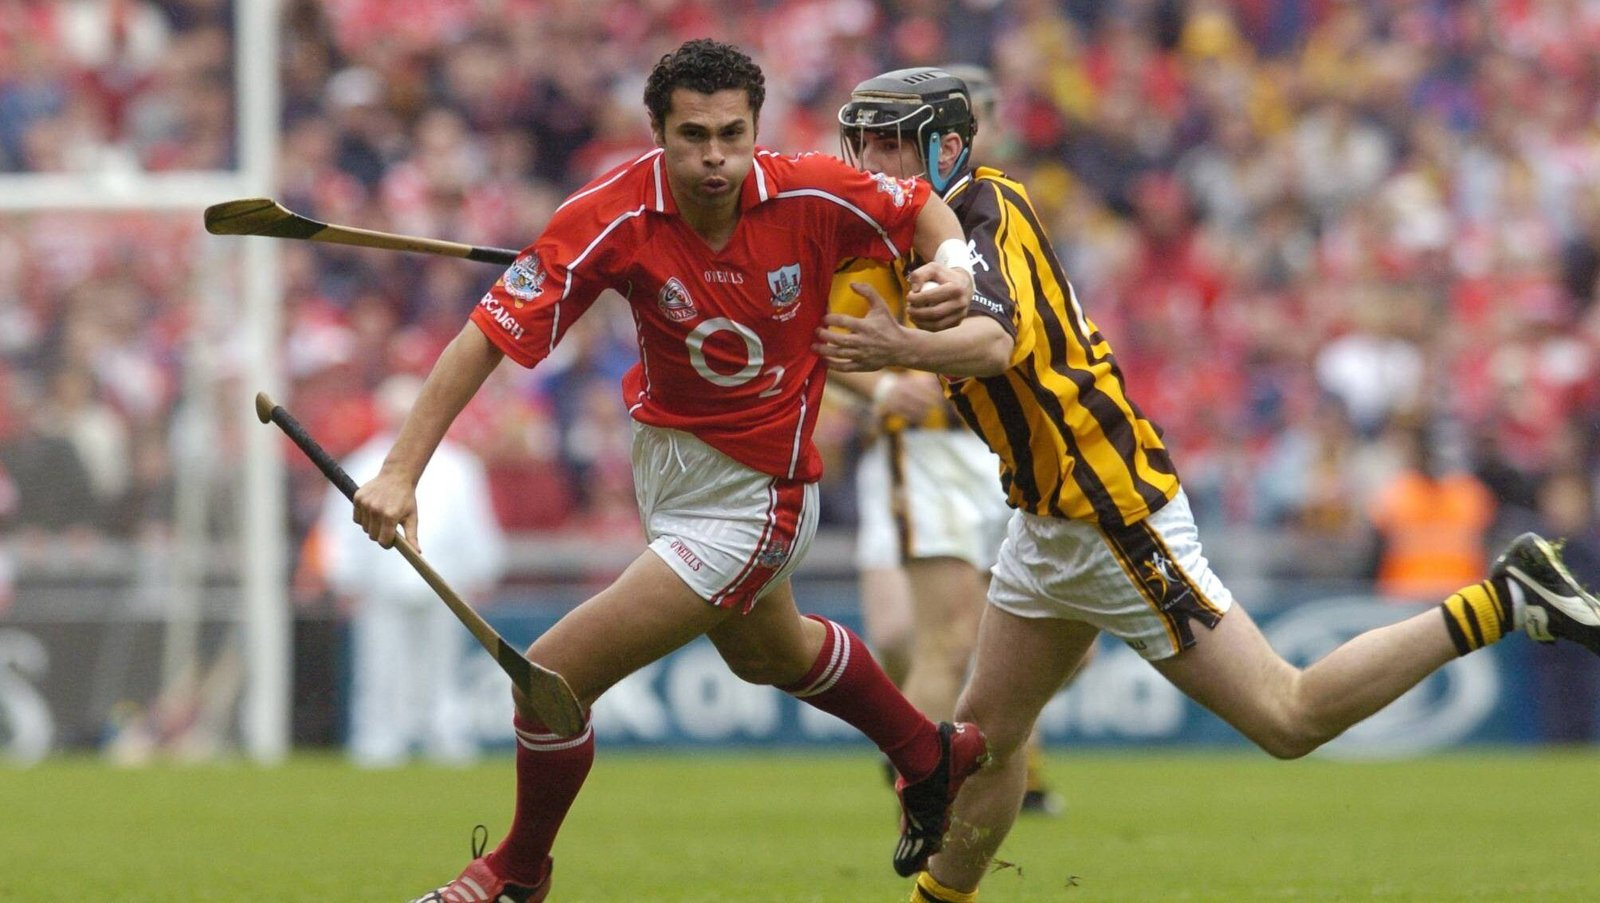 Image - Cork and Kilkenny met in three All-Ireland finals in four years between 2003 and 2006